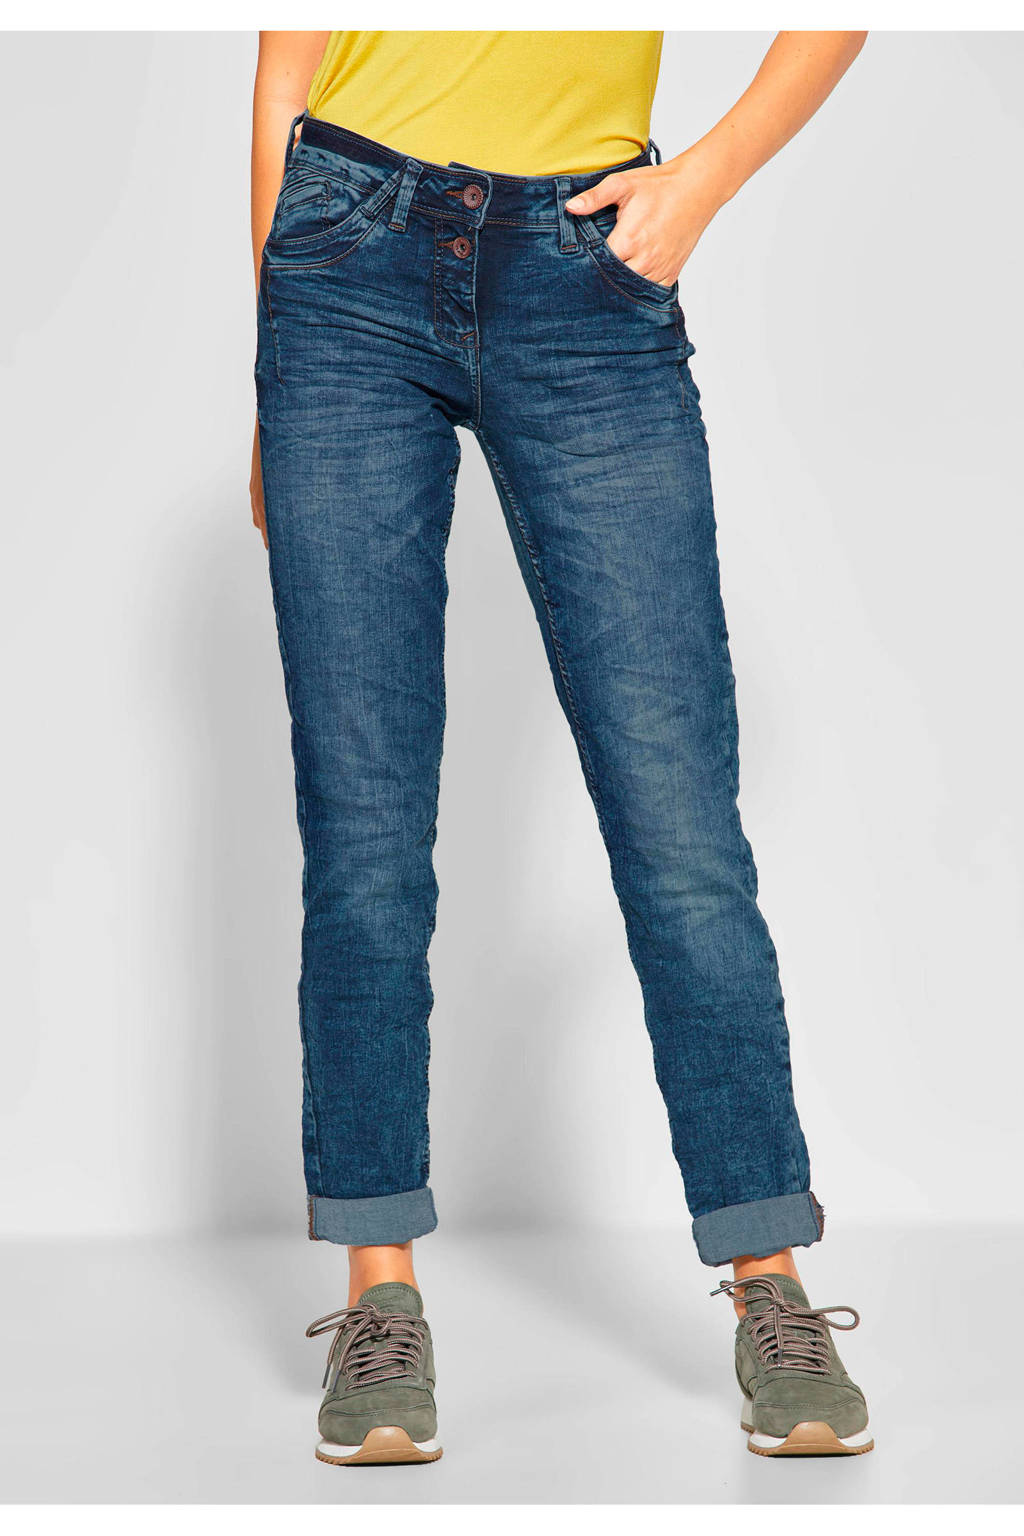 CECIL loose fit jeans Scarlett, Donkerblauw